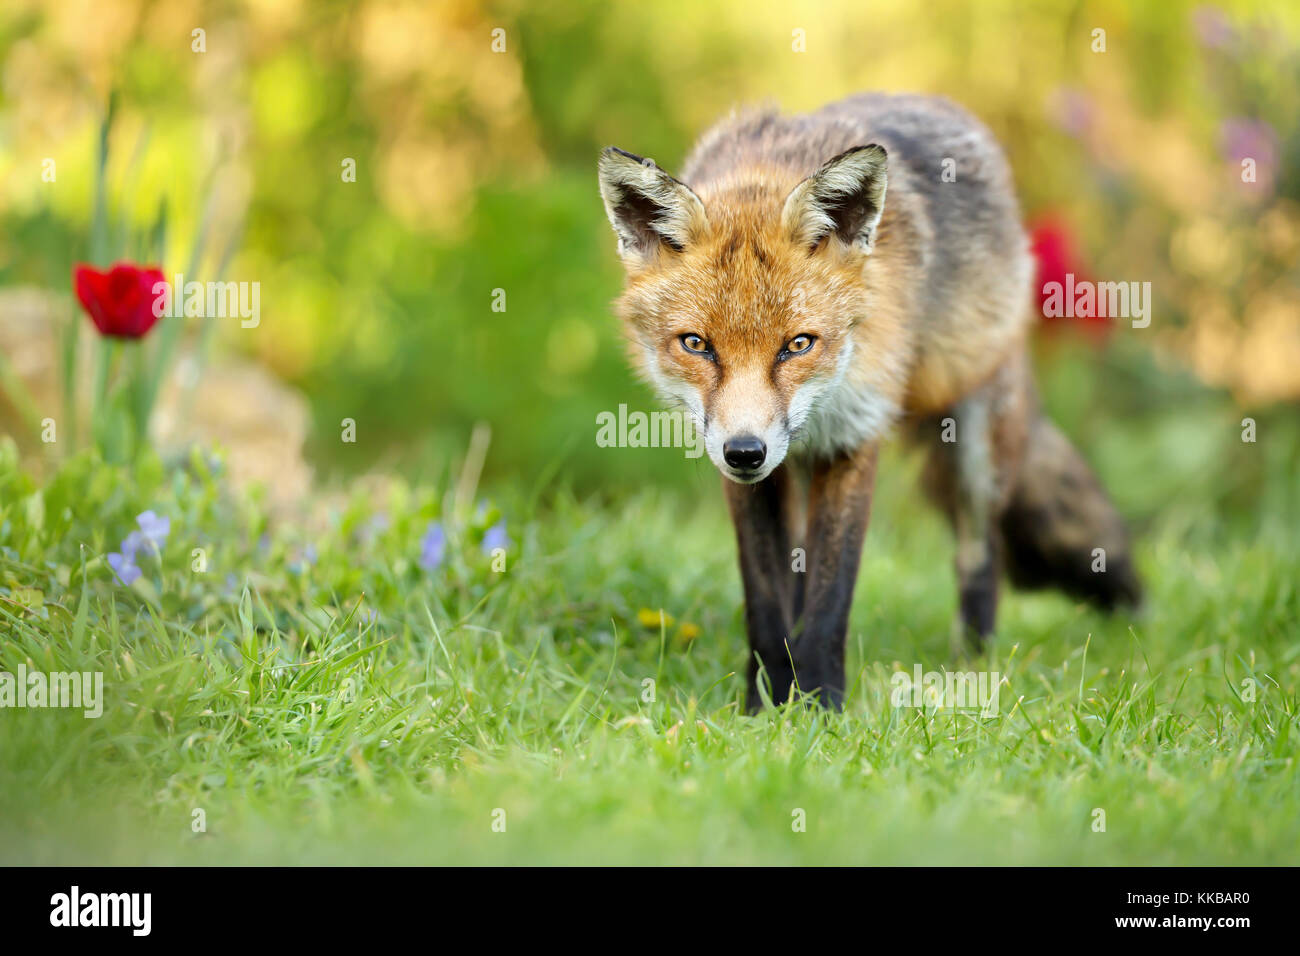 Close up of red fox standing on the grass in the garden with spring flowers, UK. - Stock Image